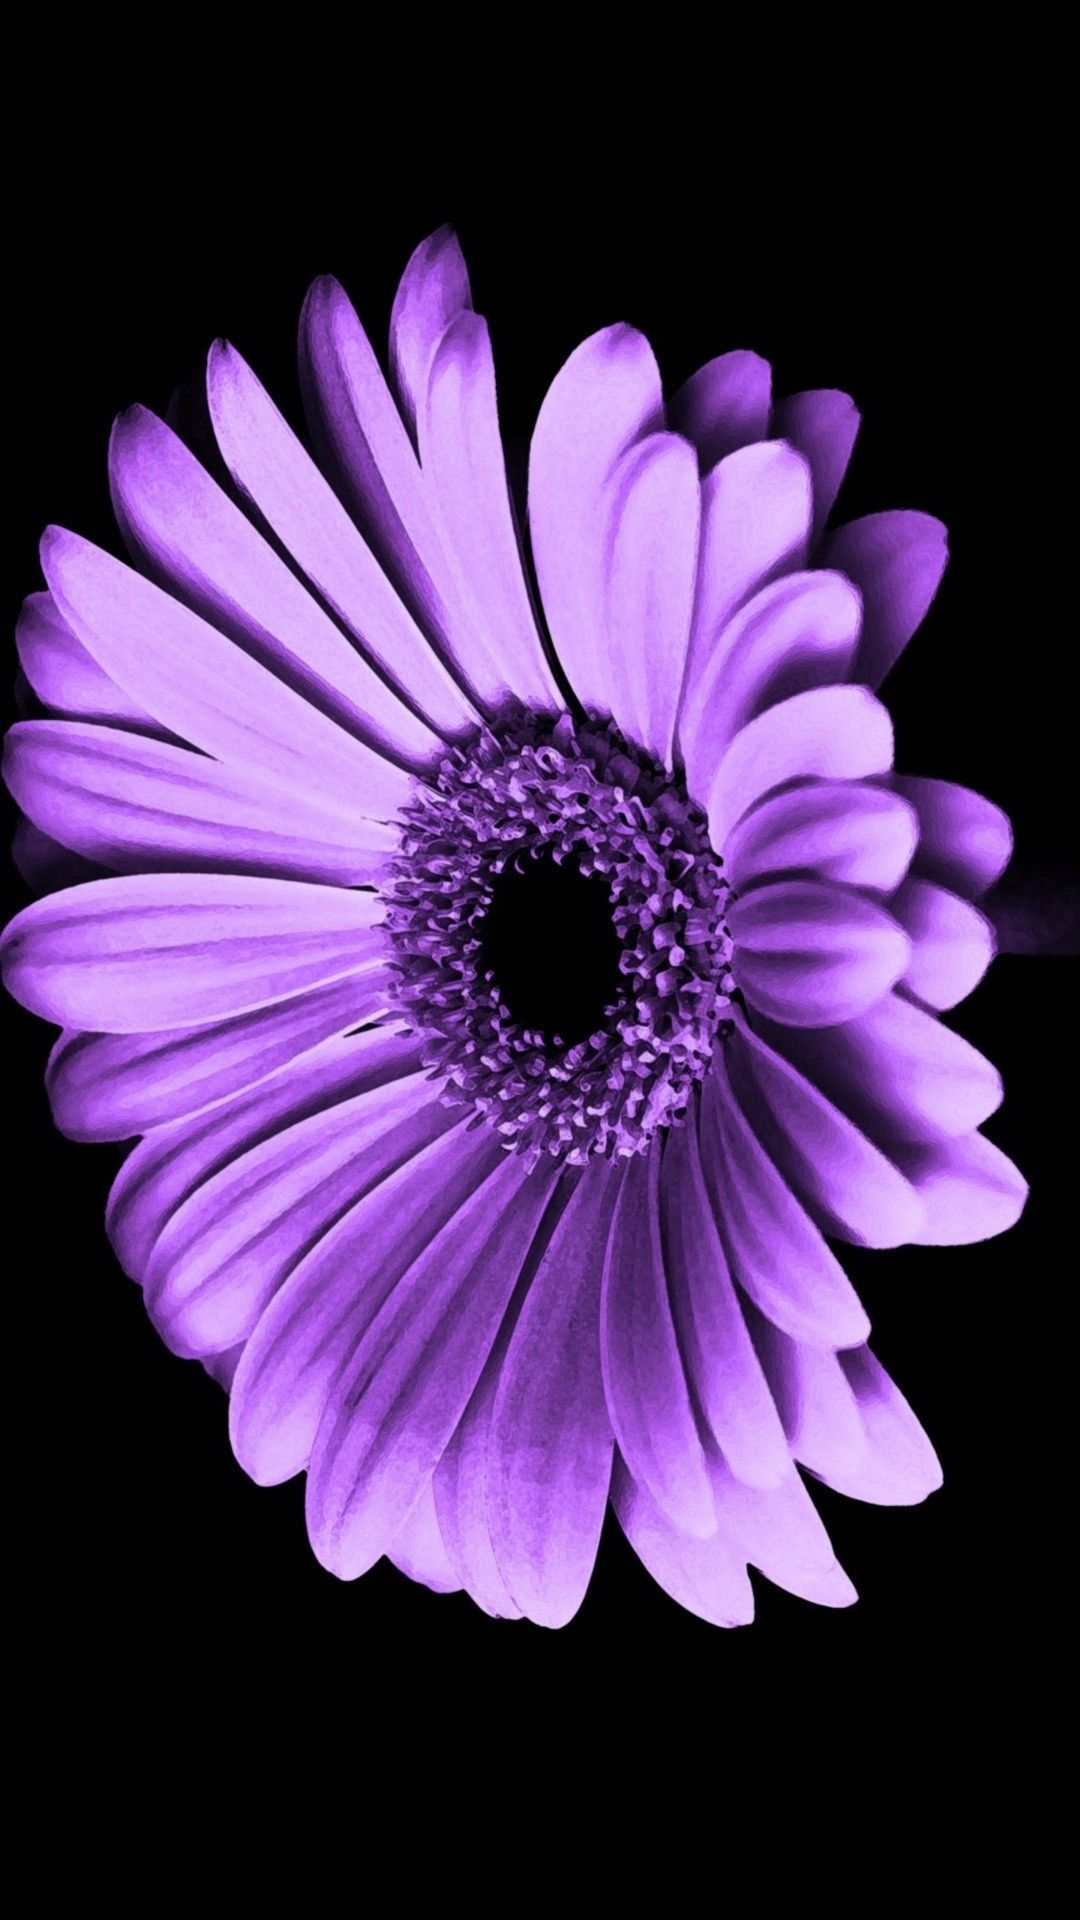 Pin by Mkdreads on Flowers Flower iphone wallpaper